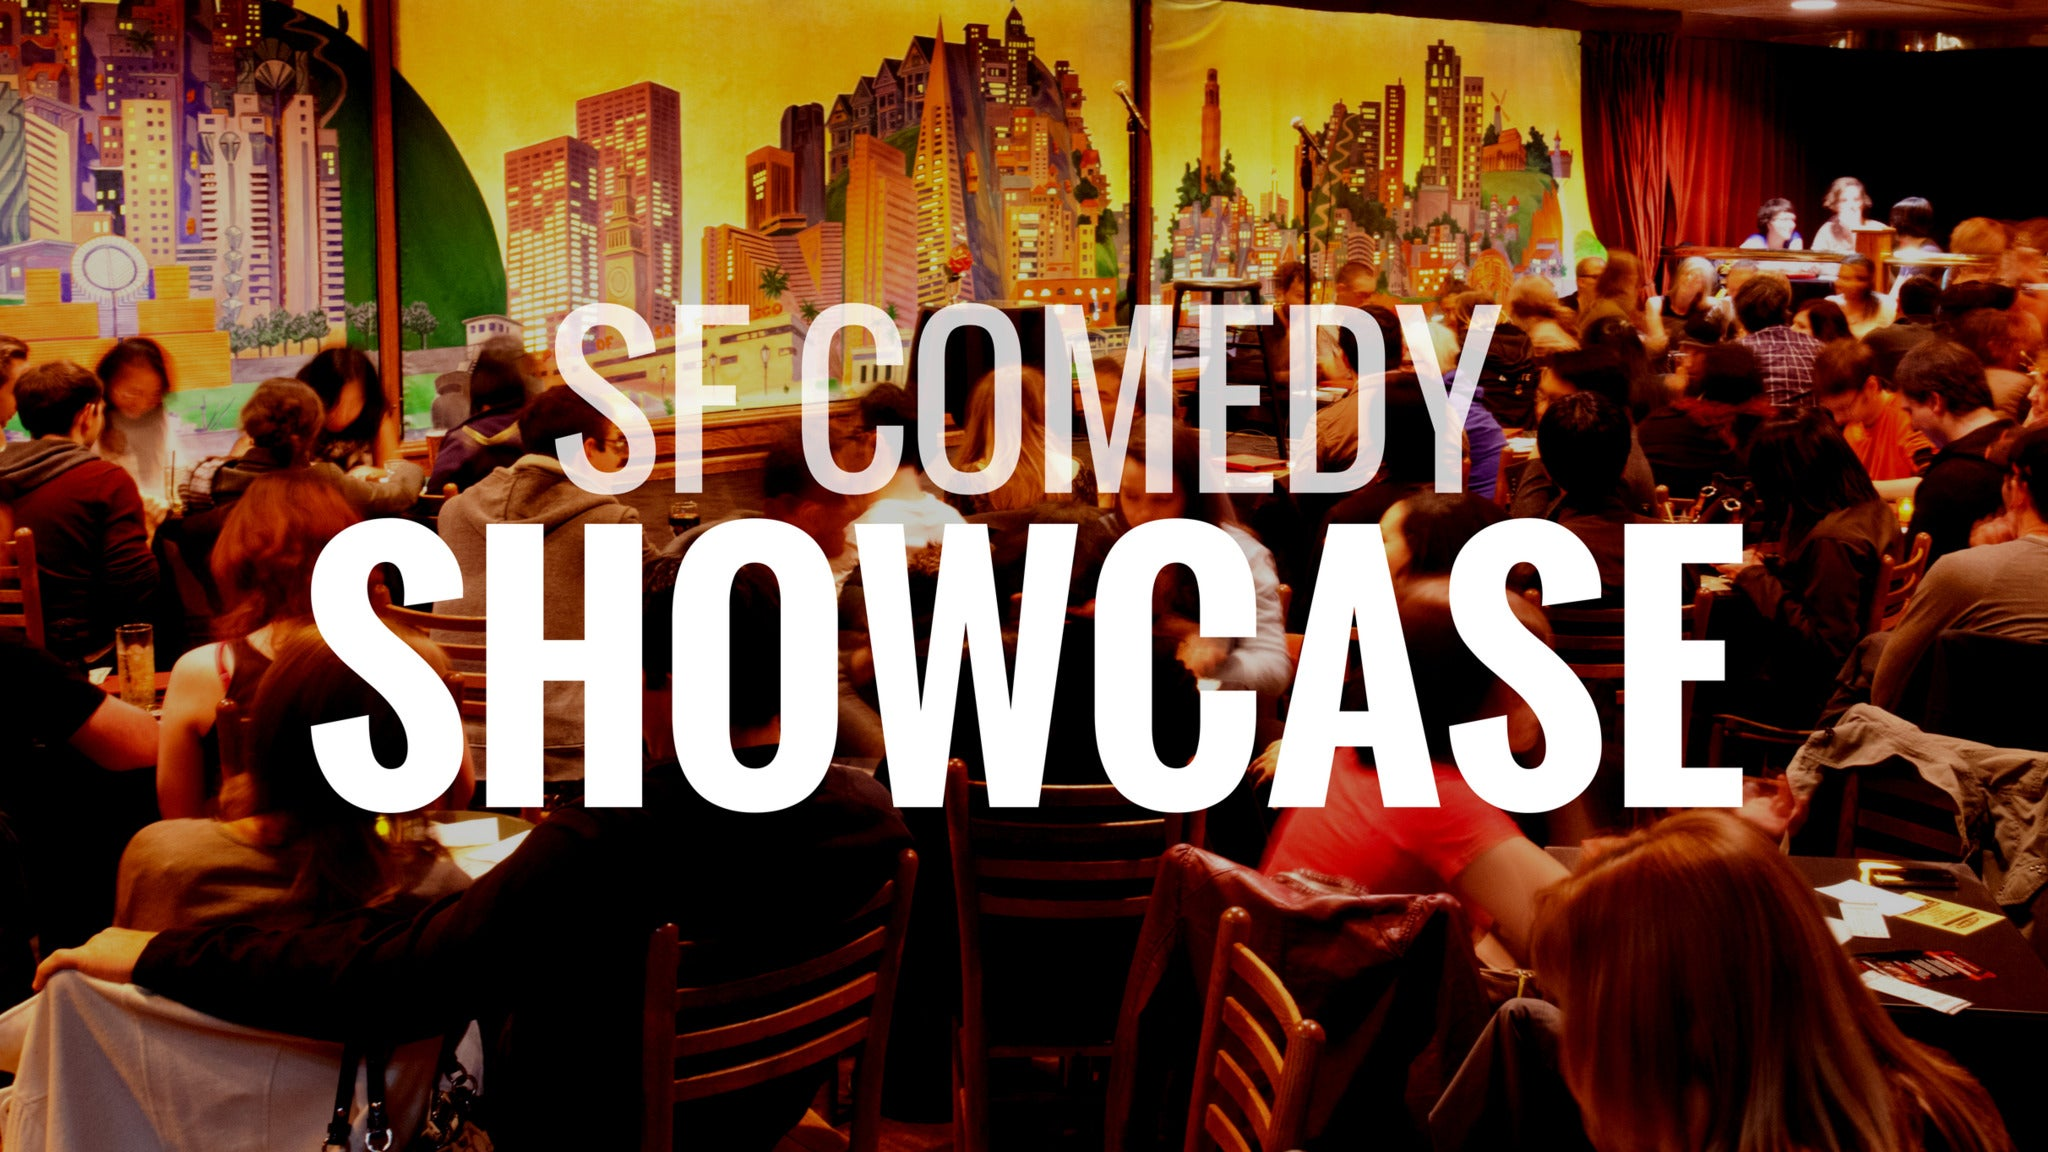 SF Comedy Showcase at Punch Line Comedy Club - San Francisco - San Francisco, CA 94111